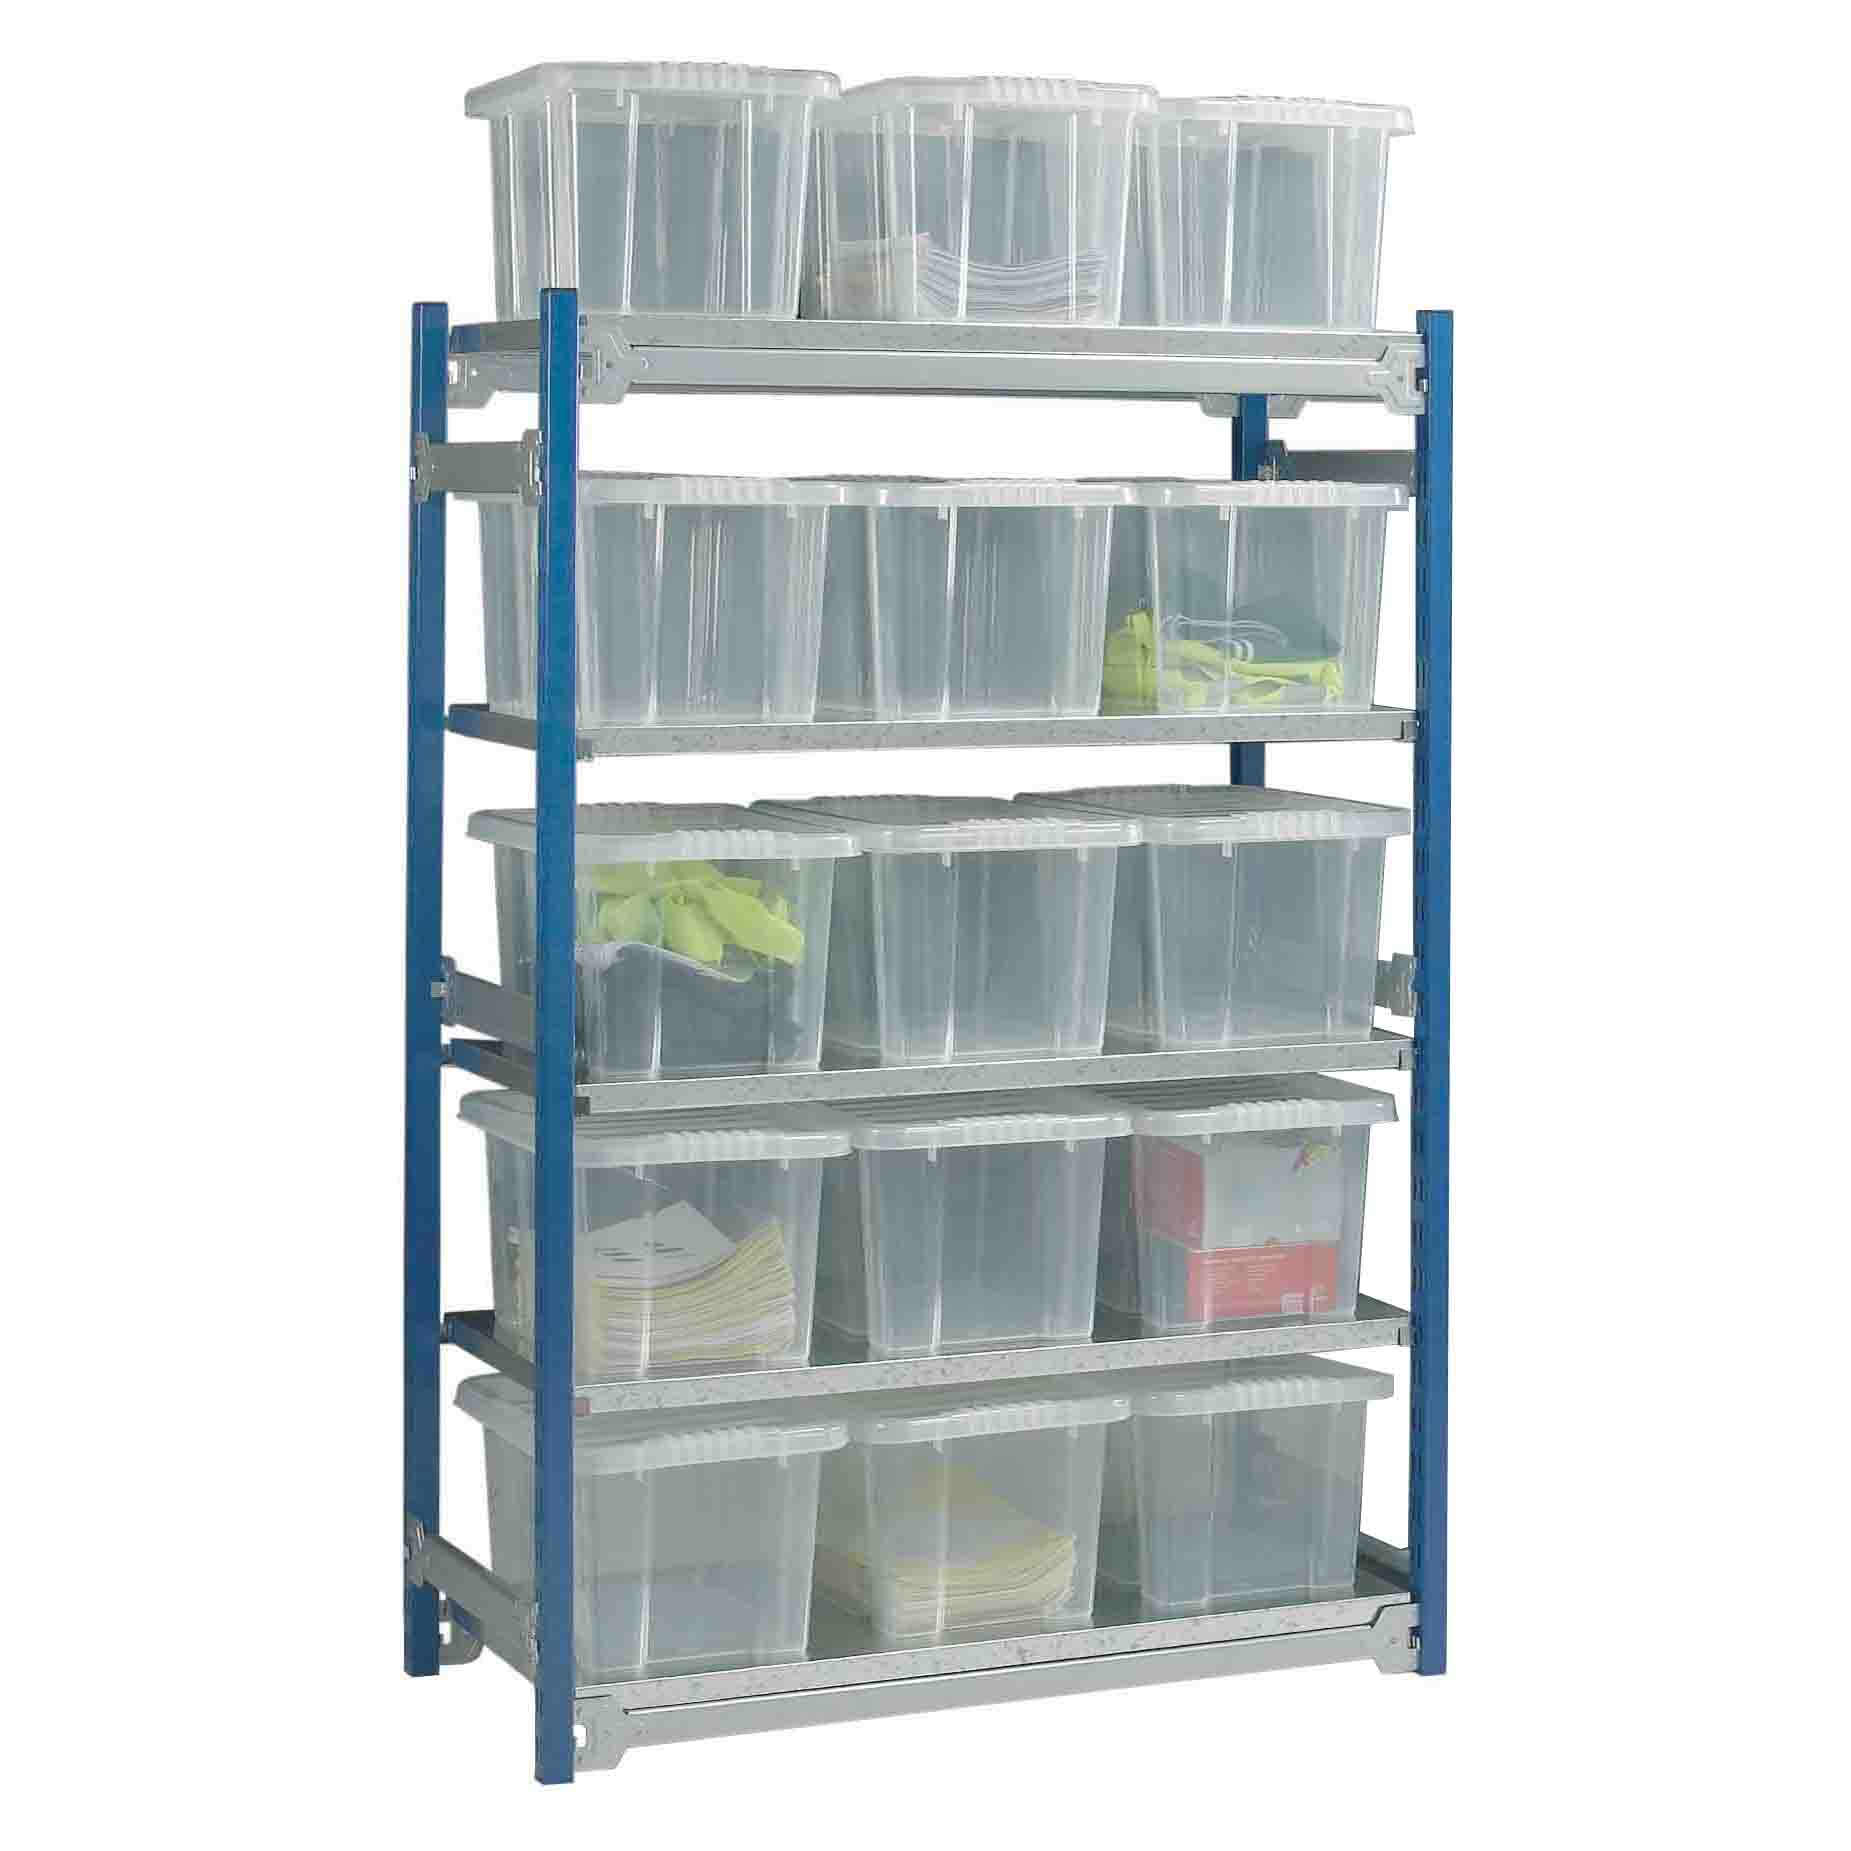 Toprax Shelving Starter Bay with 15 Containers